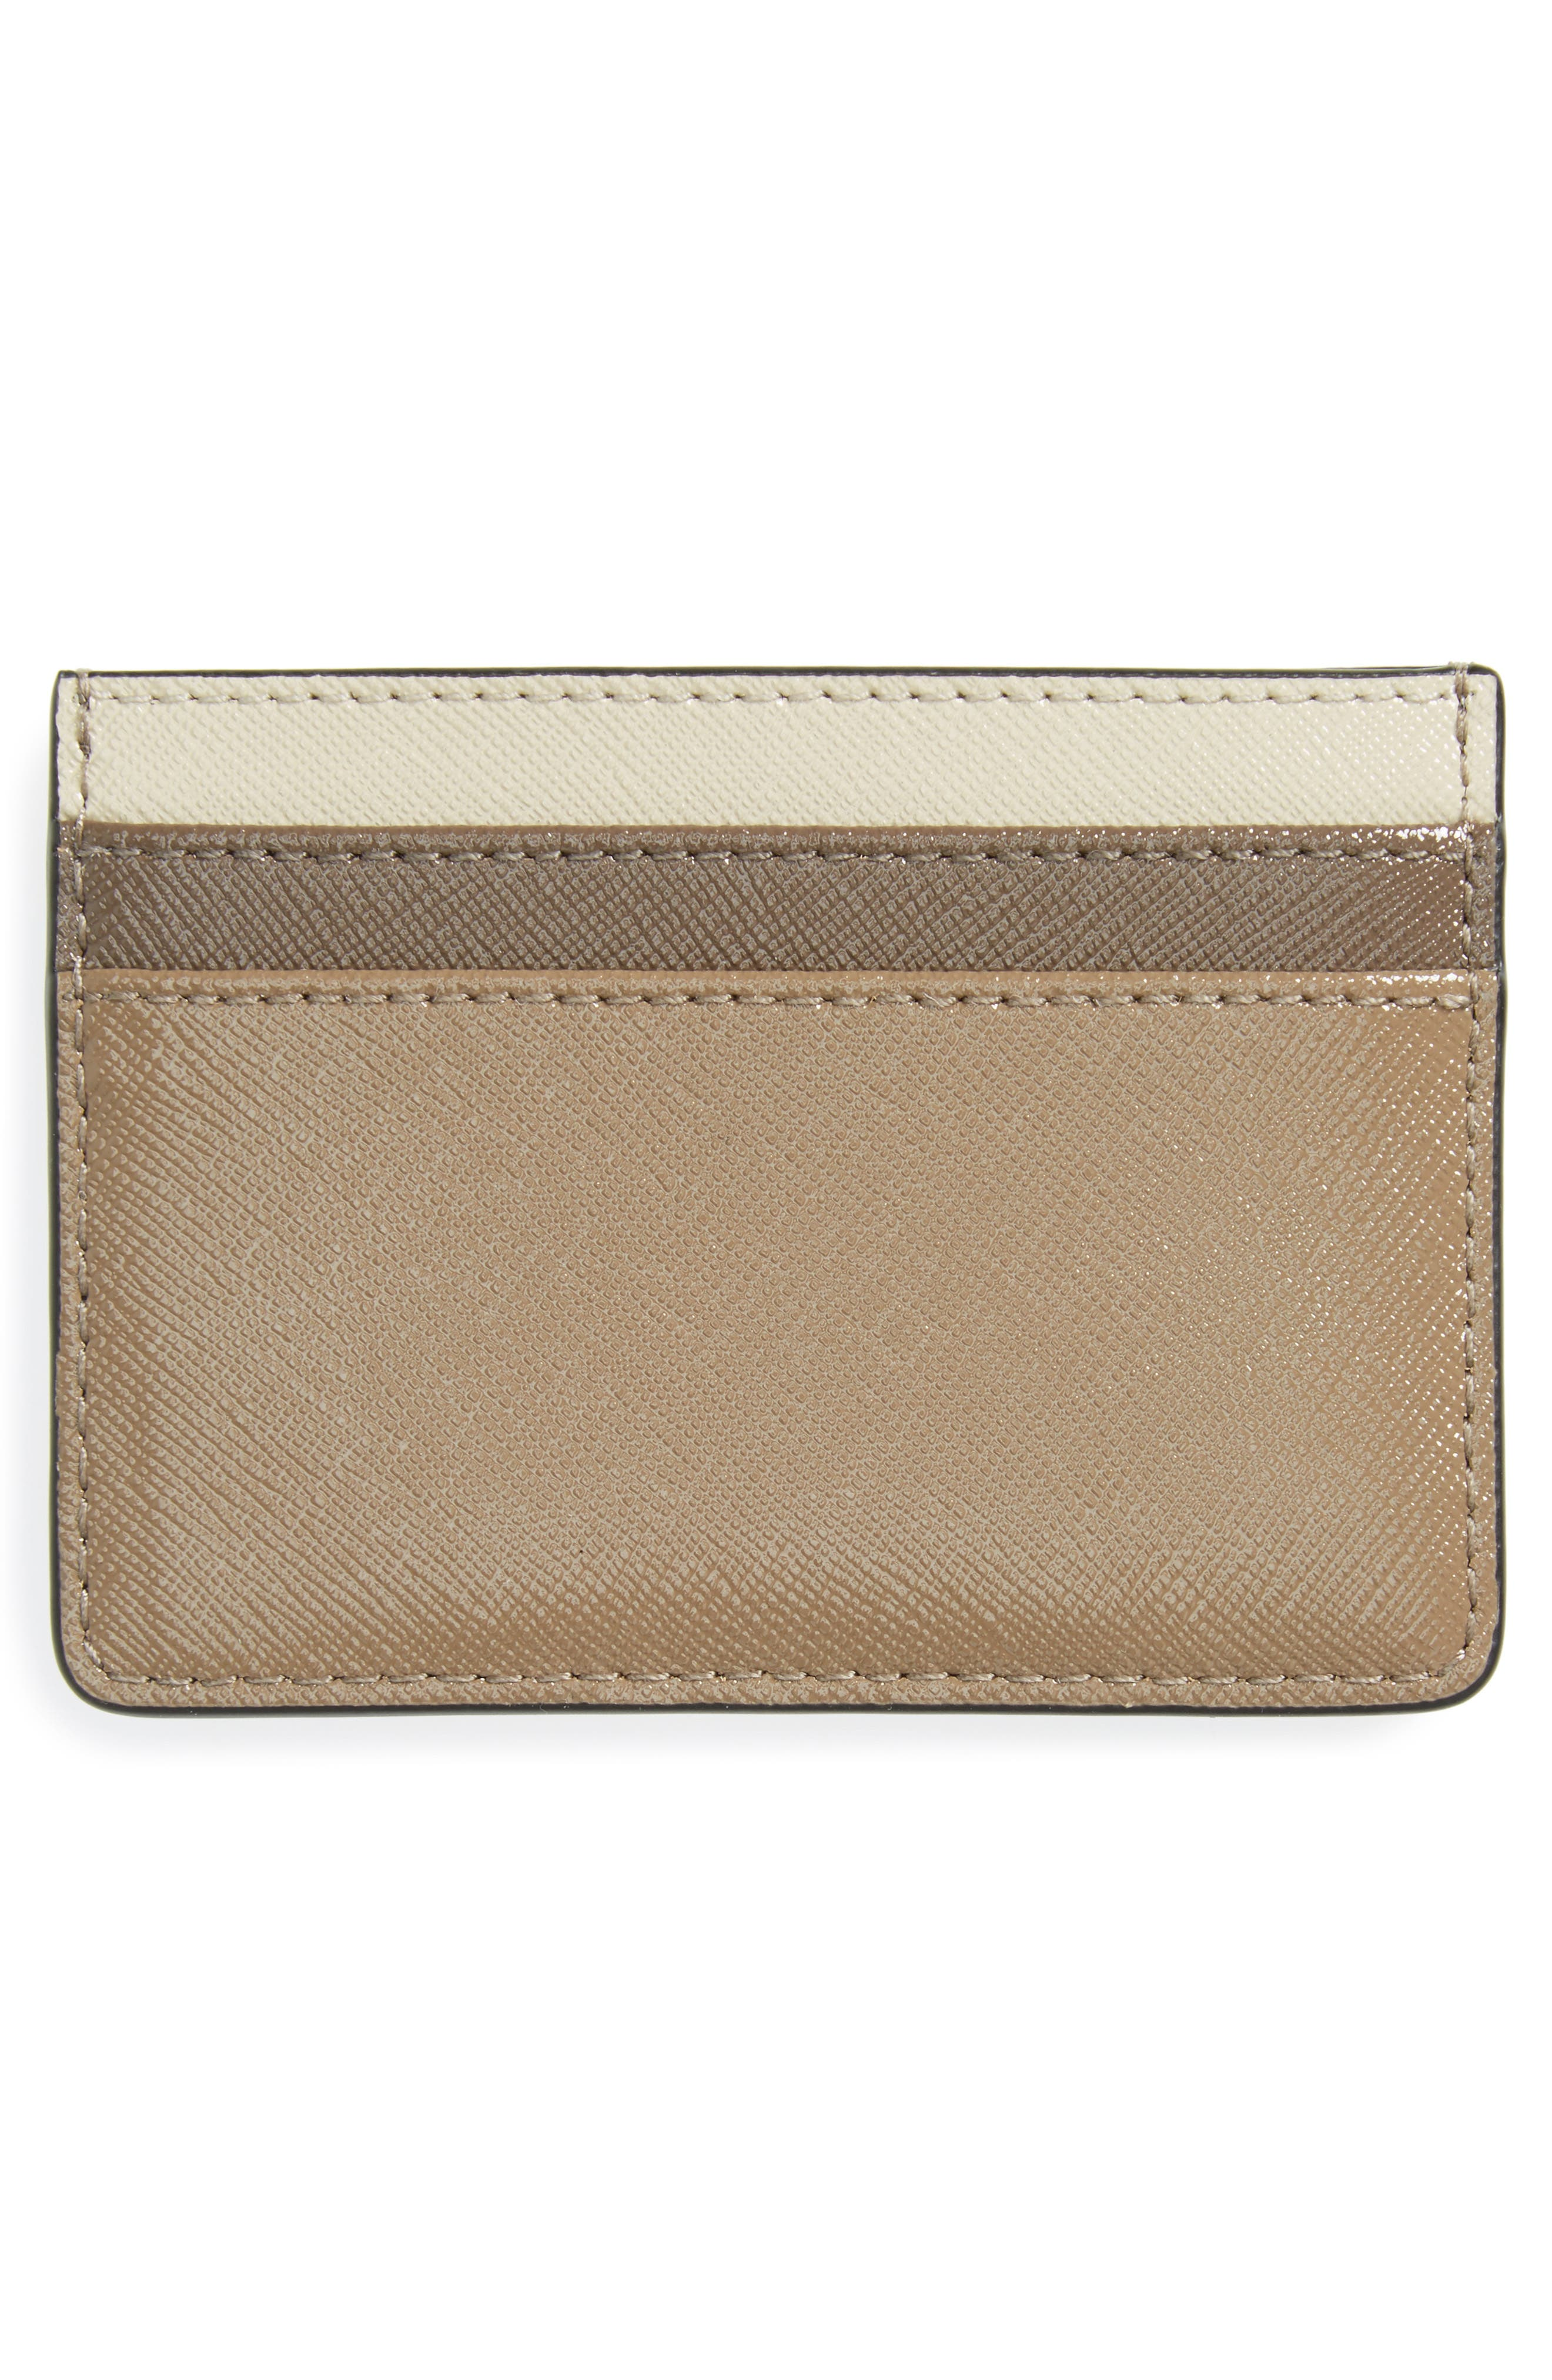 Color Block Saffiano Leather Card Case,                             Alternate thumbnail 2, color,                             French Grey Multi